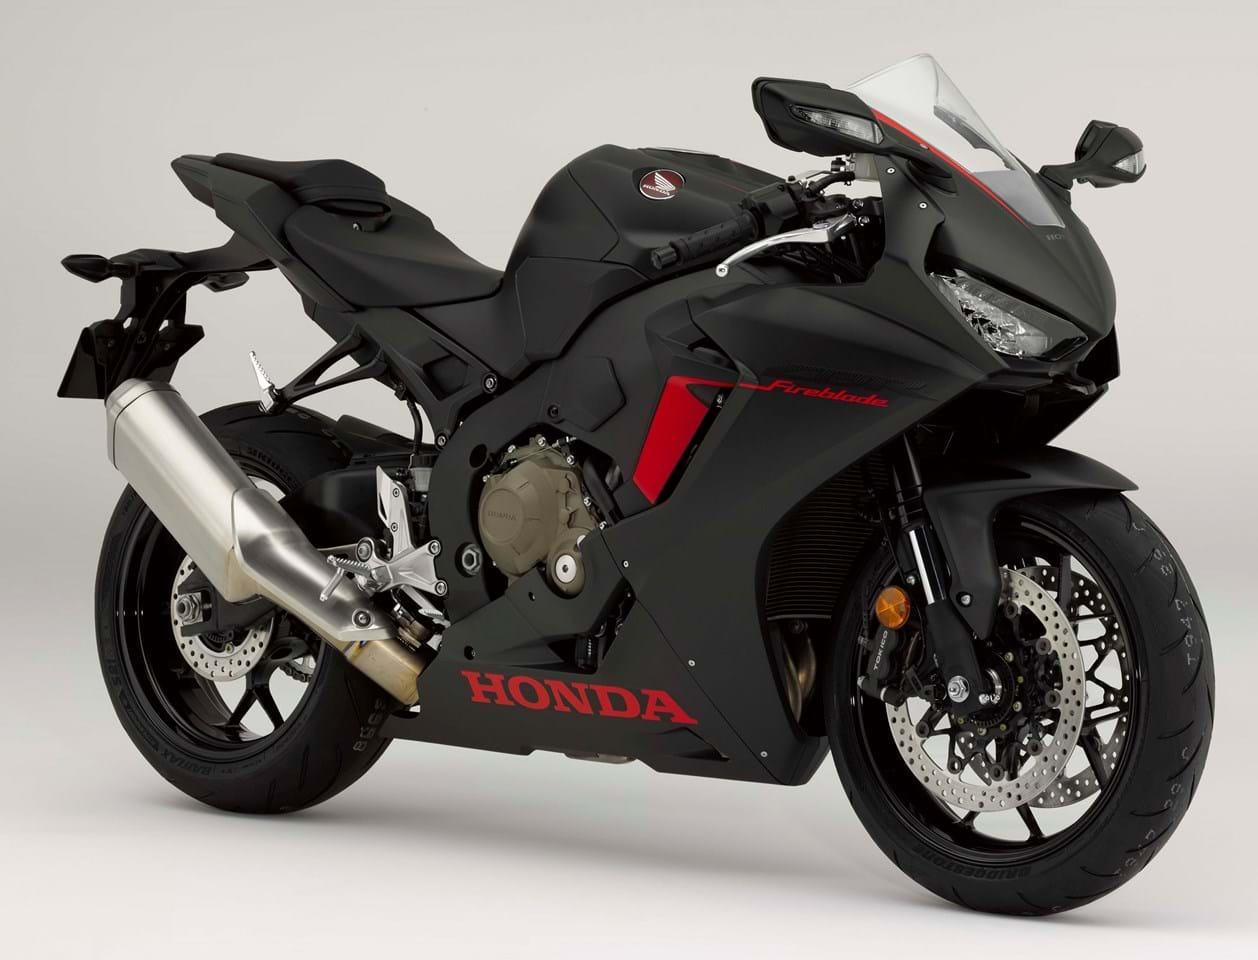 Honda Cbr1000rr Fireblade 2017 On For Sale Price